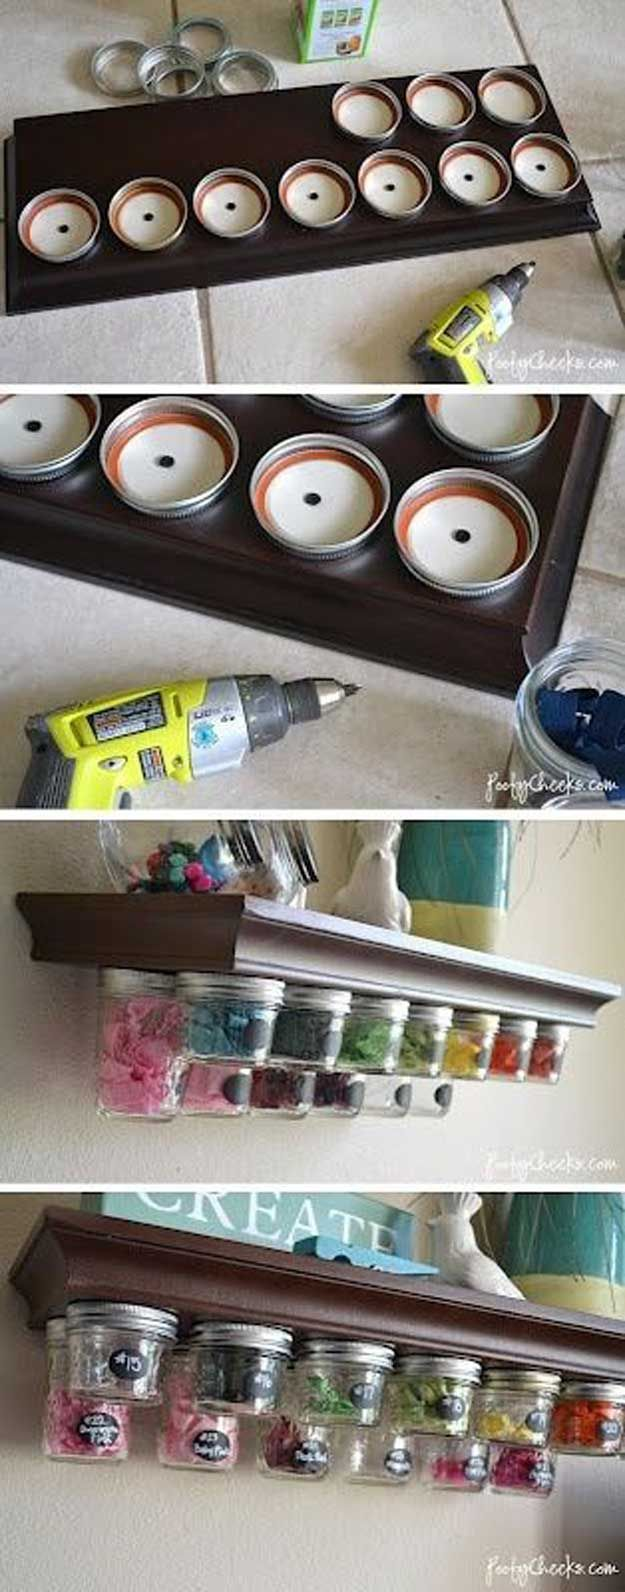 17 Best Ideas About Sewing Room Design On Pinterest